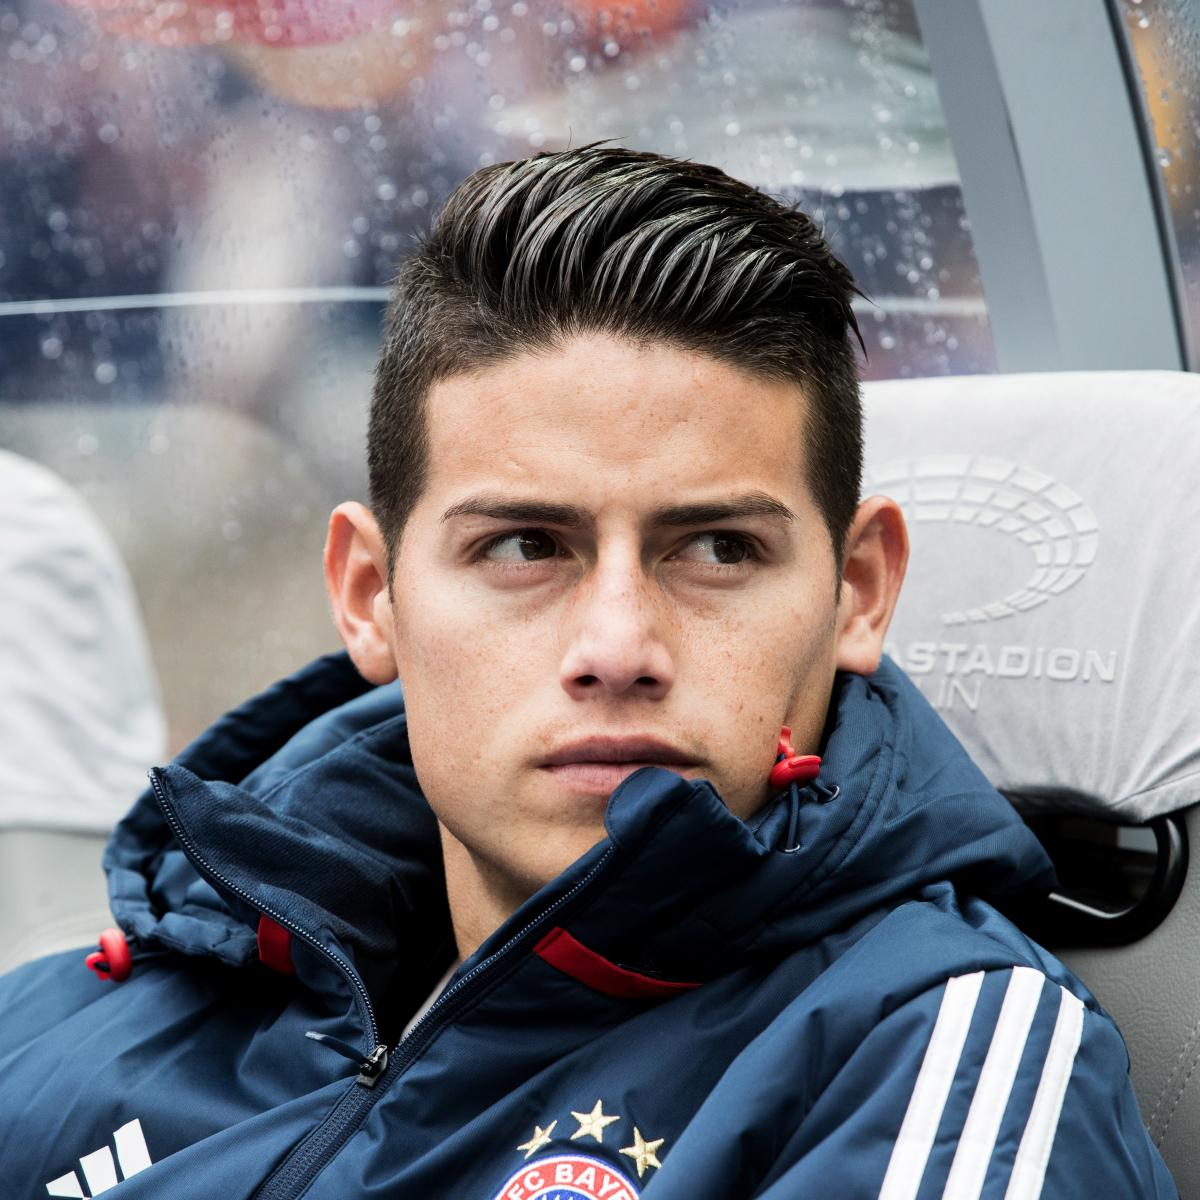 James Rodriguez Bayern Munich Future In Doubt Amid Talk Of Return To Real Madrid